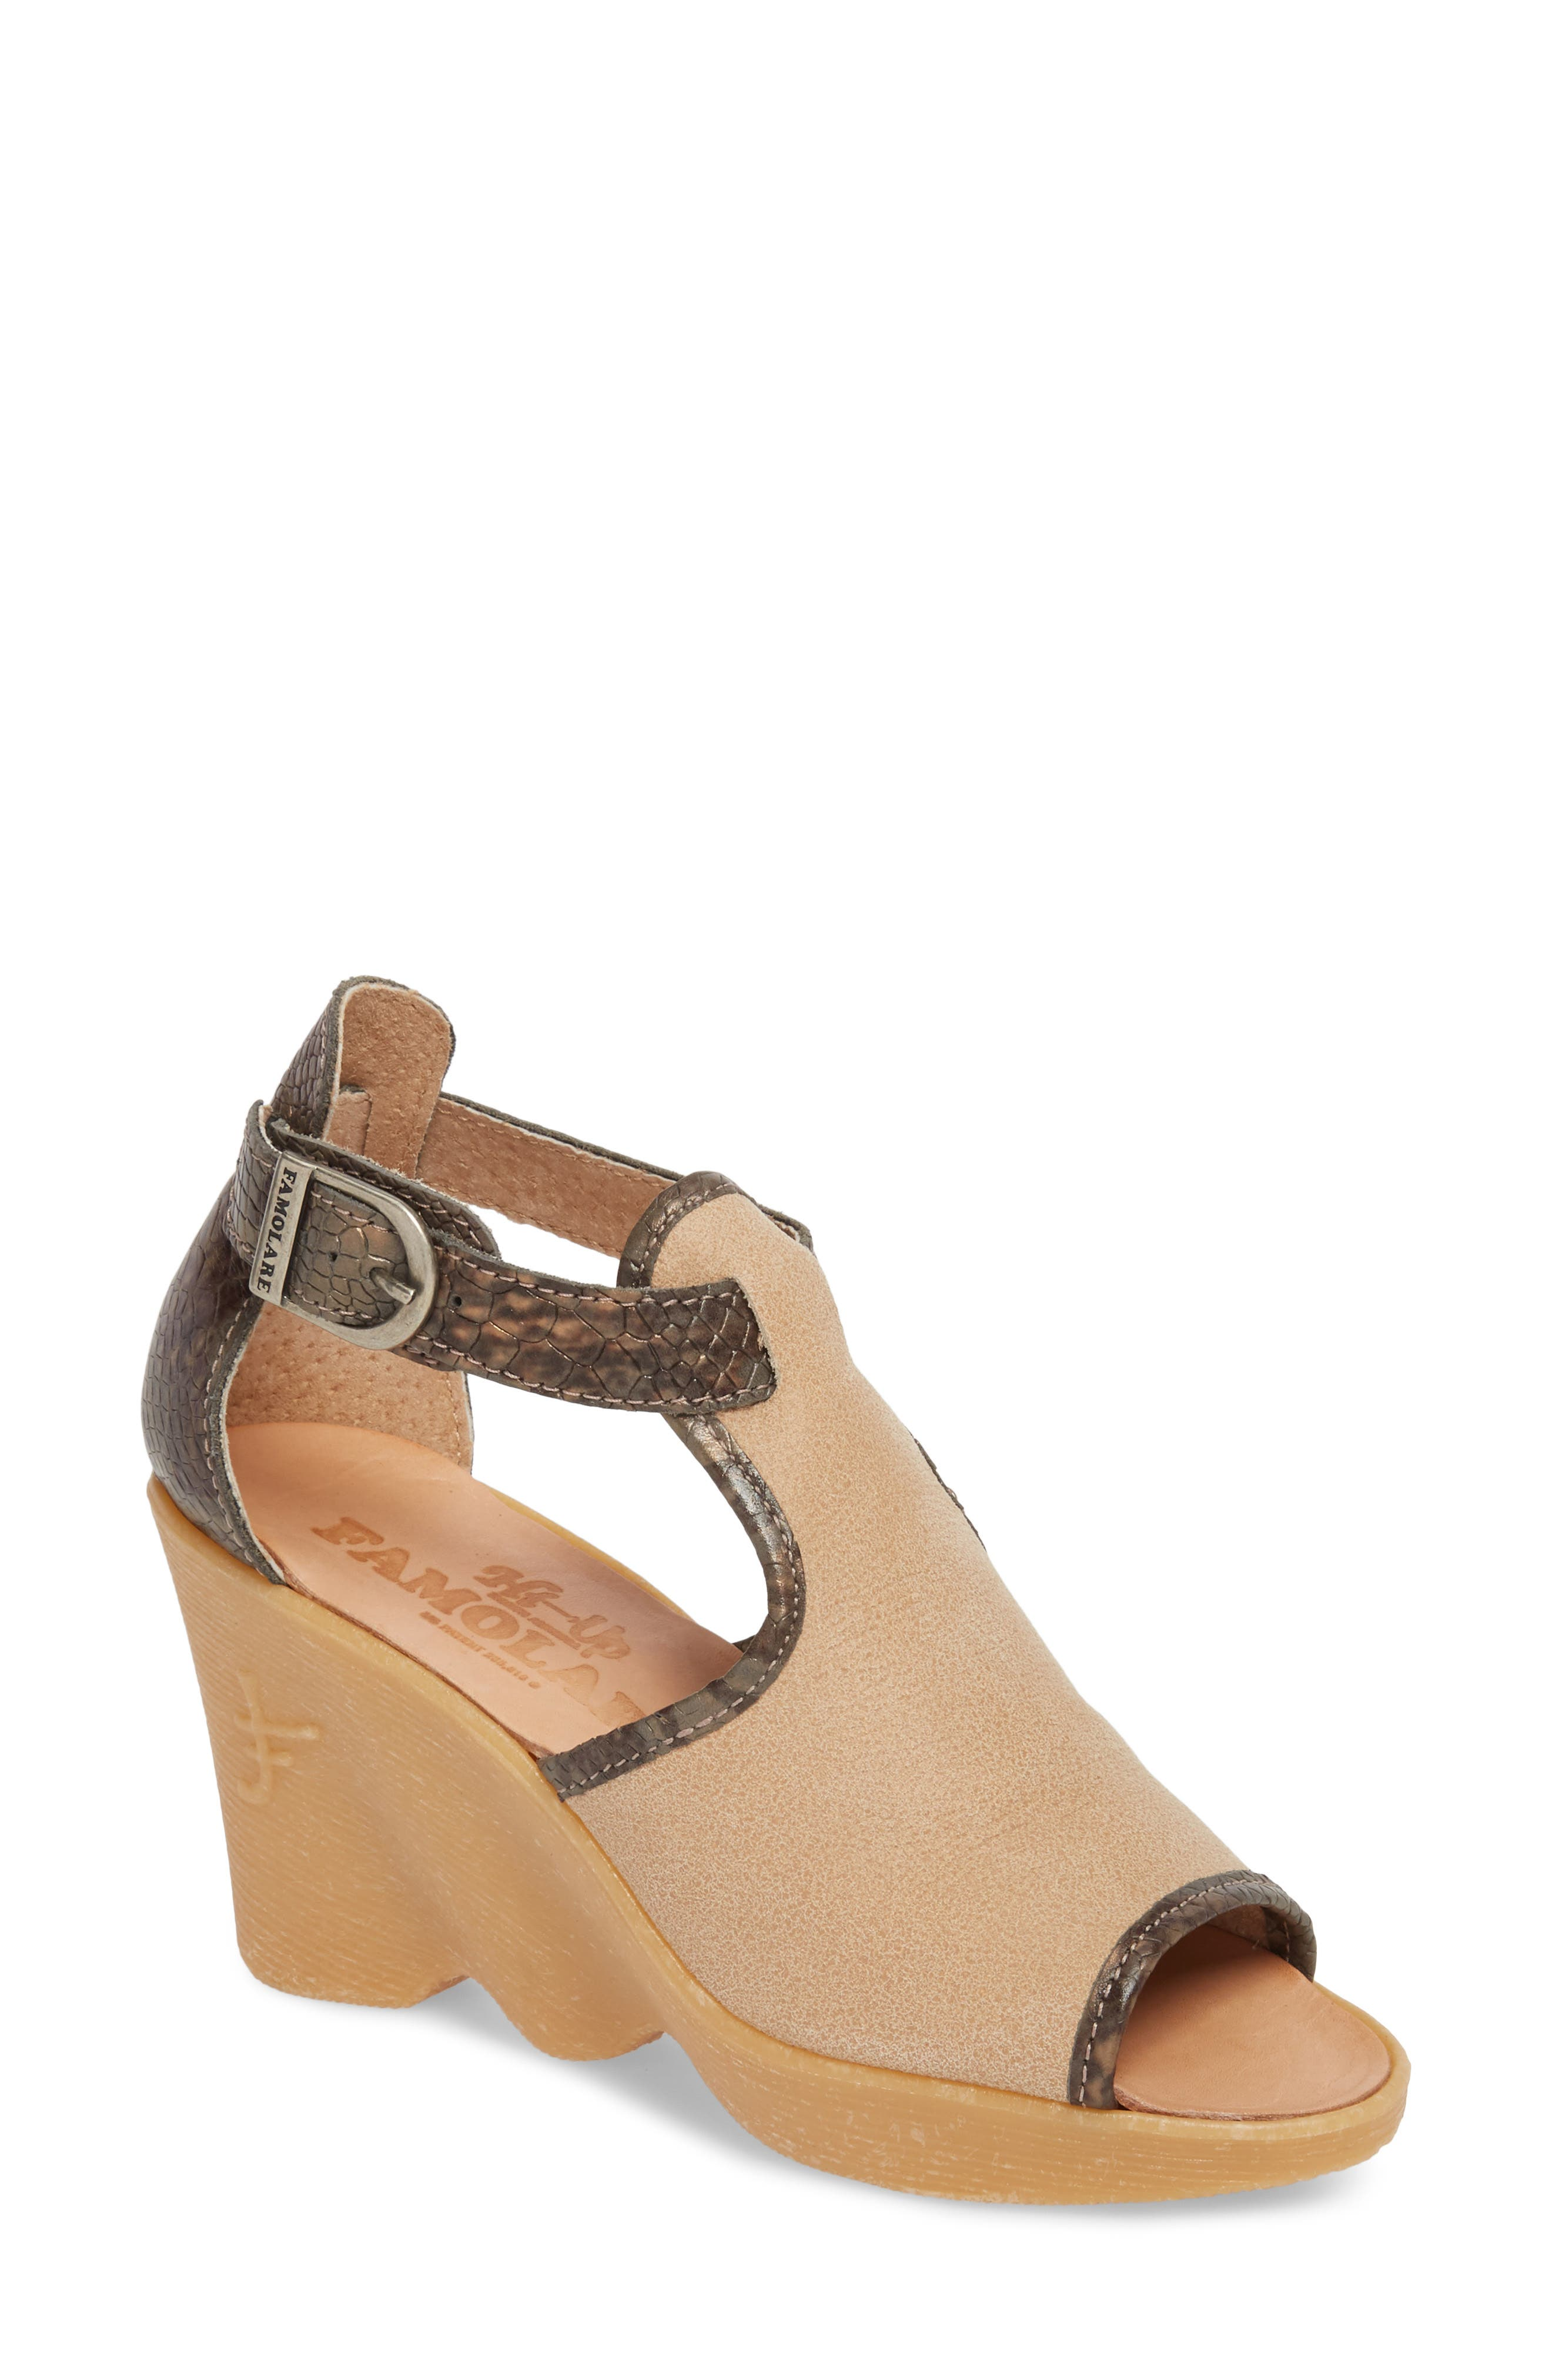 Queen Bee Wedge Sandal,                         Main,                         color, Nude Mix Leather